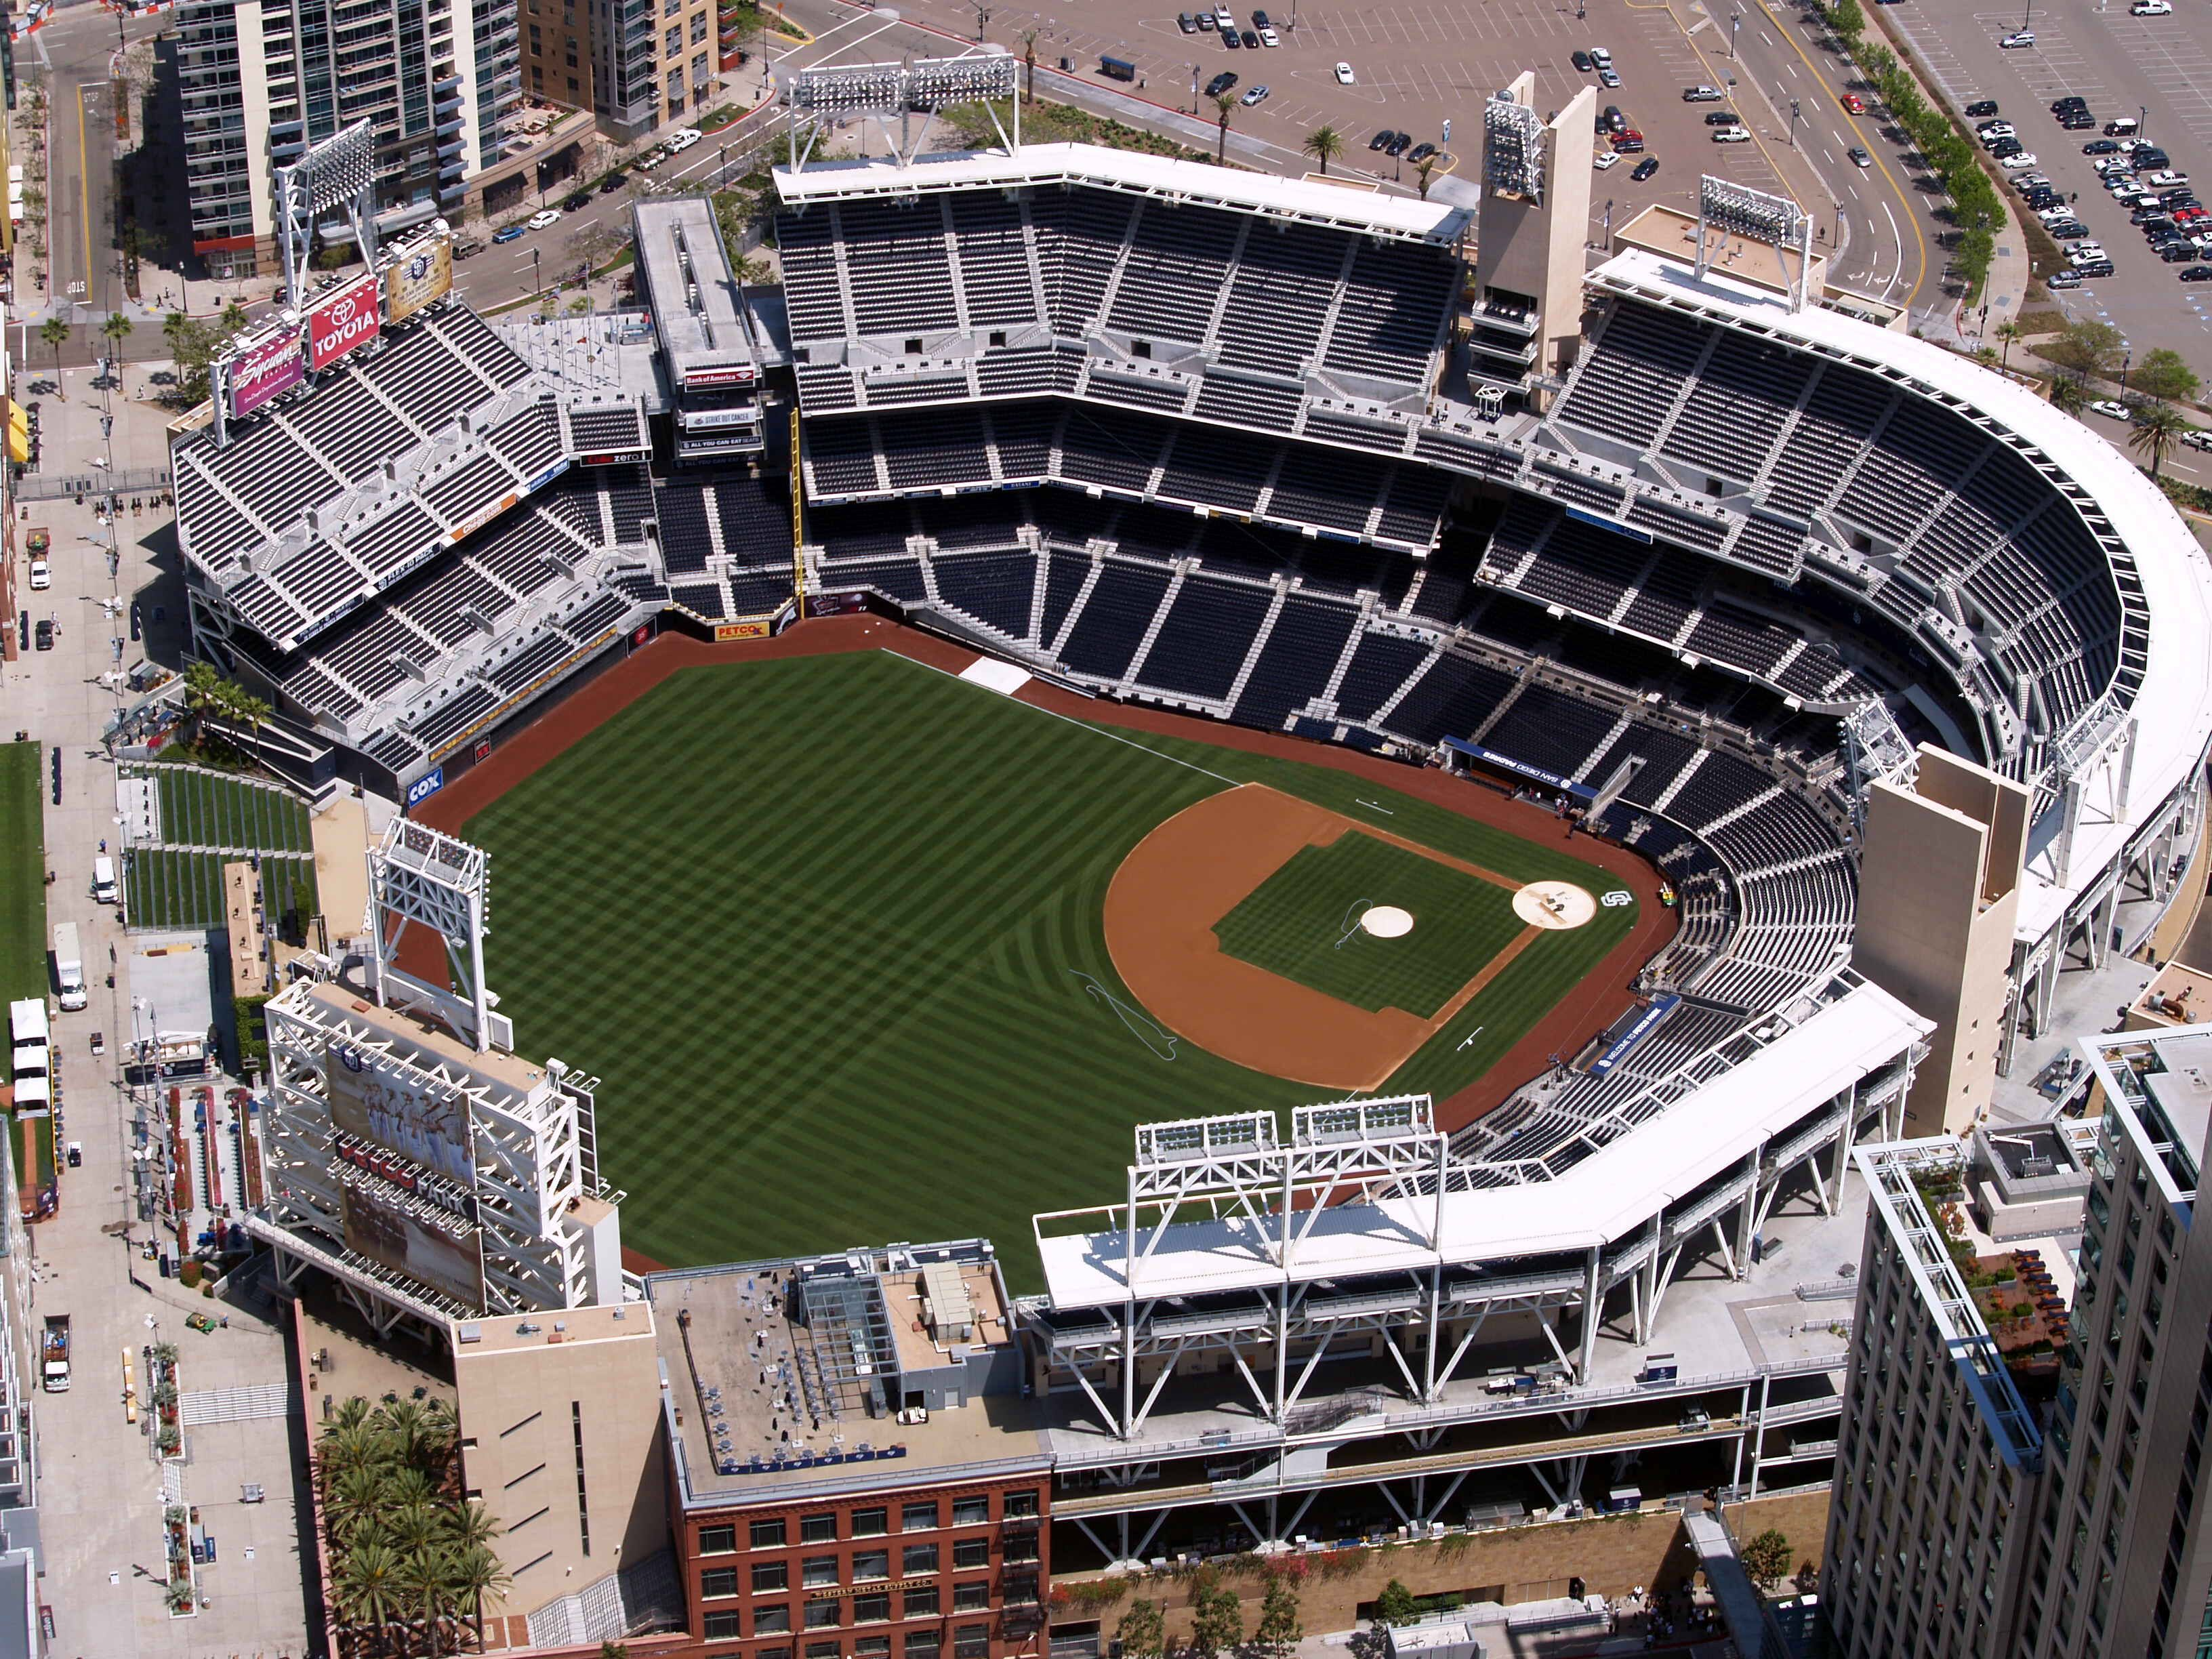 San Diego Padres Petco Park With Images Petco Park San Diego Padres Baseball Park